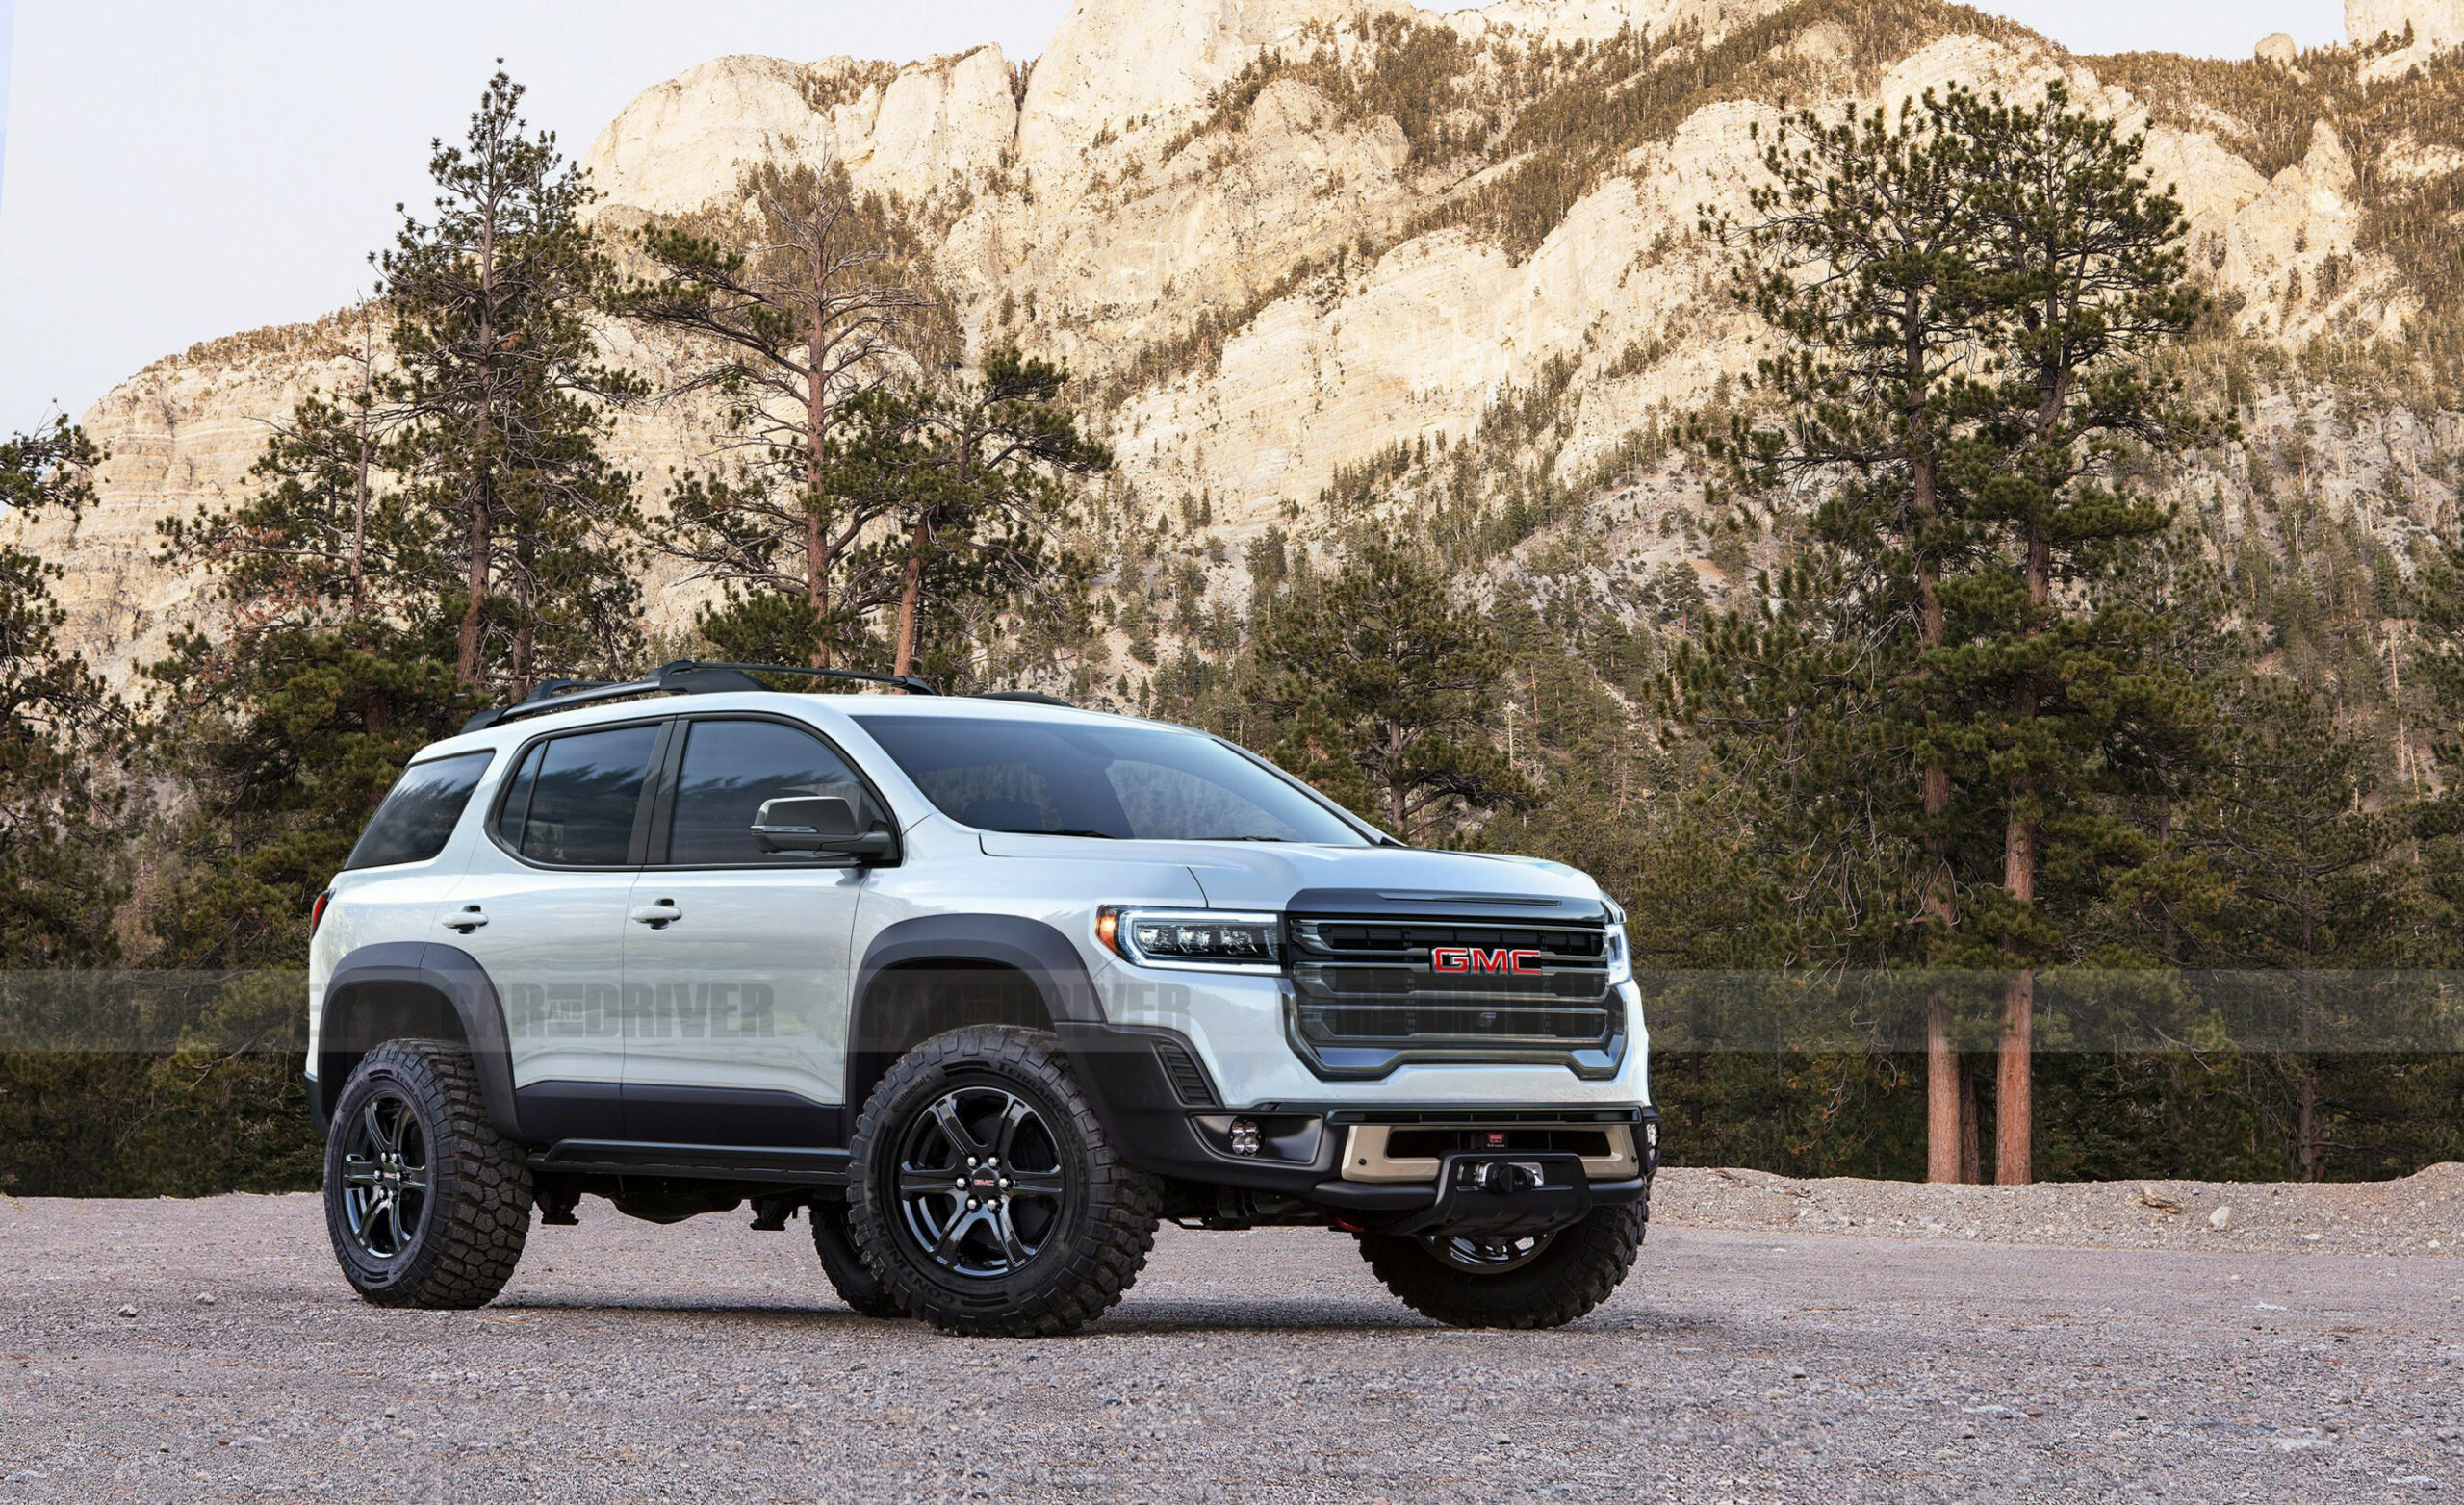 New Model and Performance Chevrolet Blazer 2022